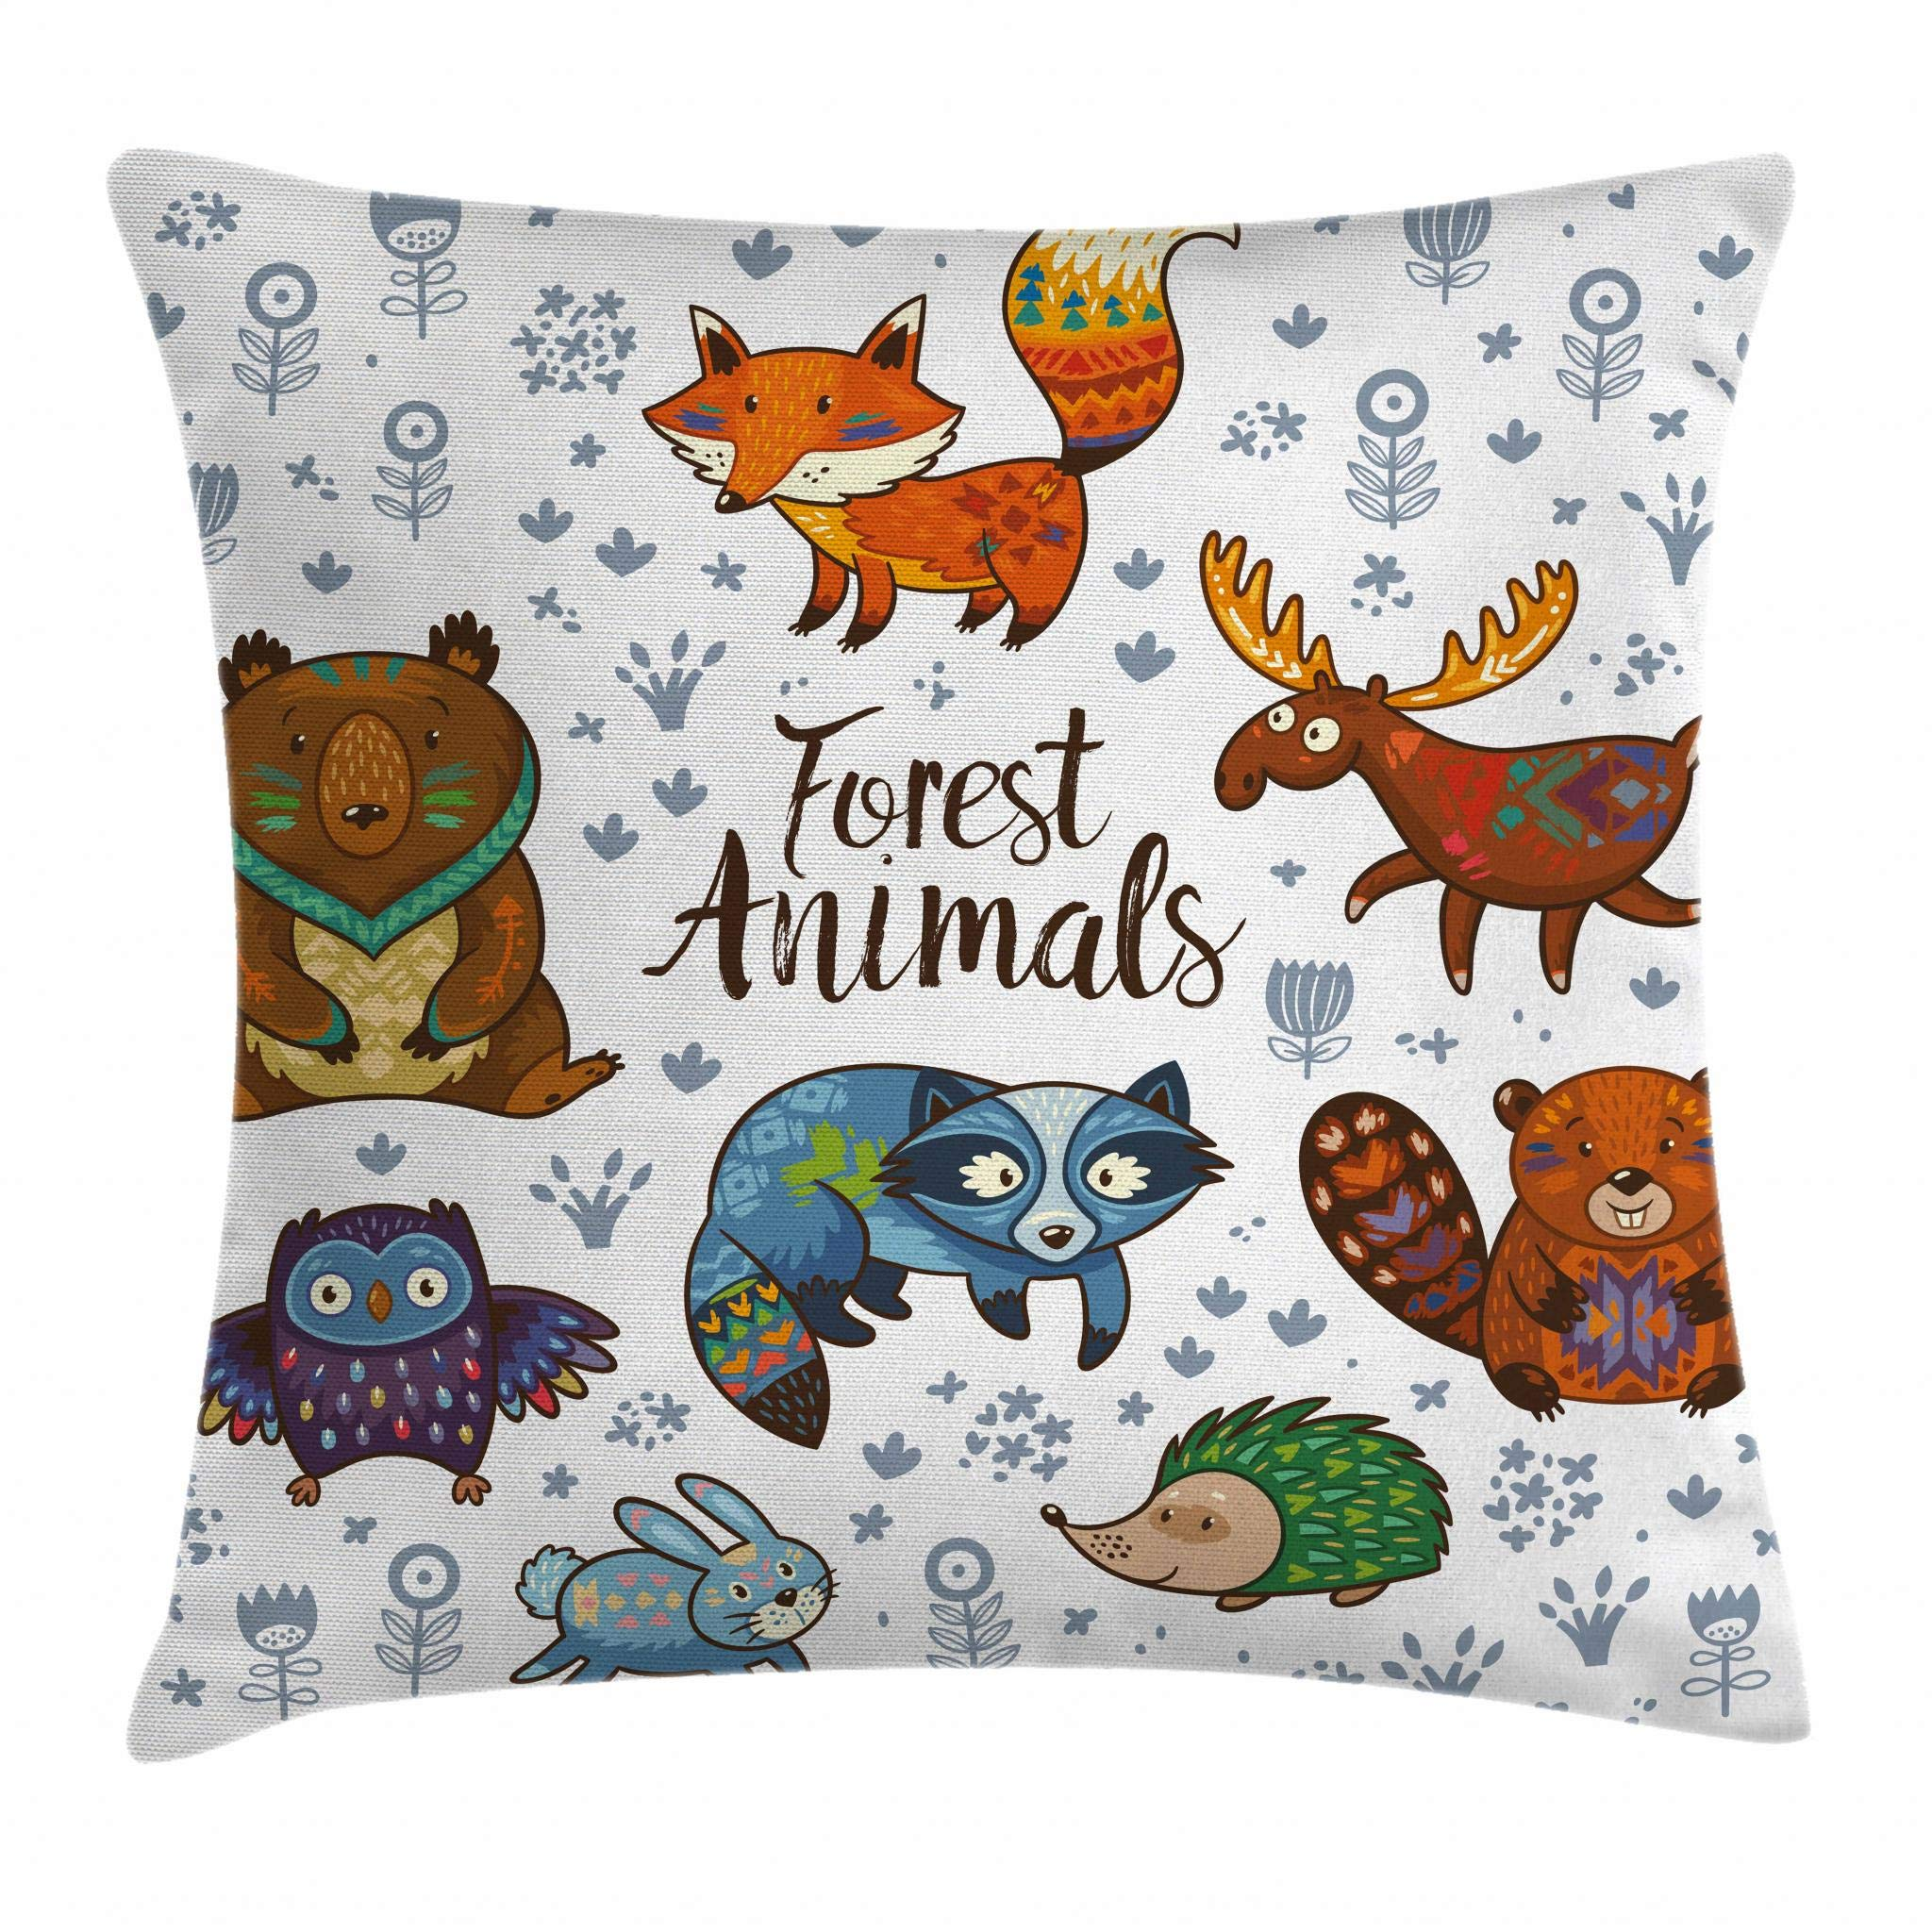 Ambesonne Cabin Decor Throw Pillow Cushion Cover by, Set of Cute Woodland Animals Tribal Nature Elements Kids Room Nursery Wall Art, Decorative Square Accent Pillow Case, 18 X 18 Inches, Multicolor